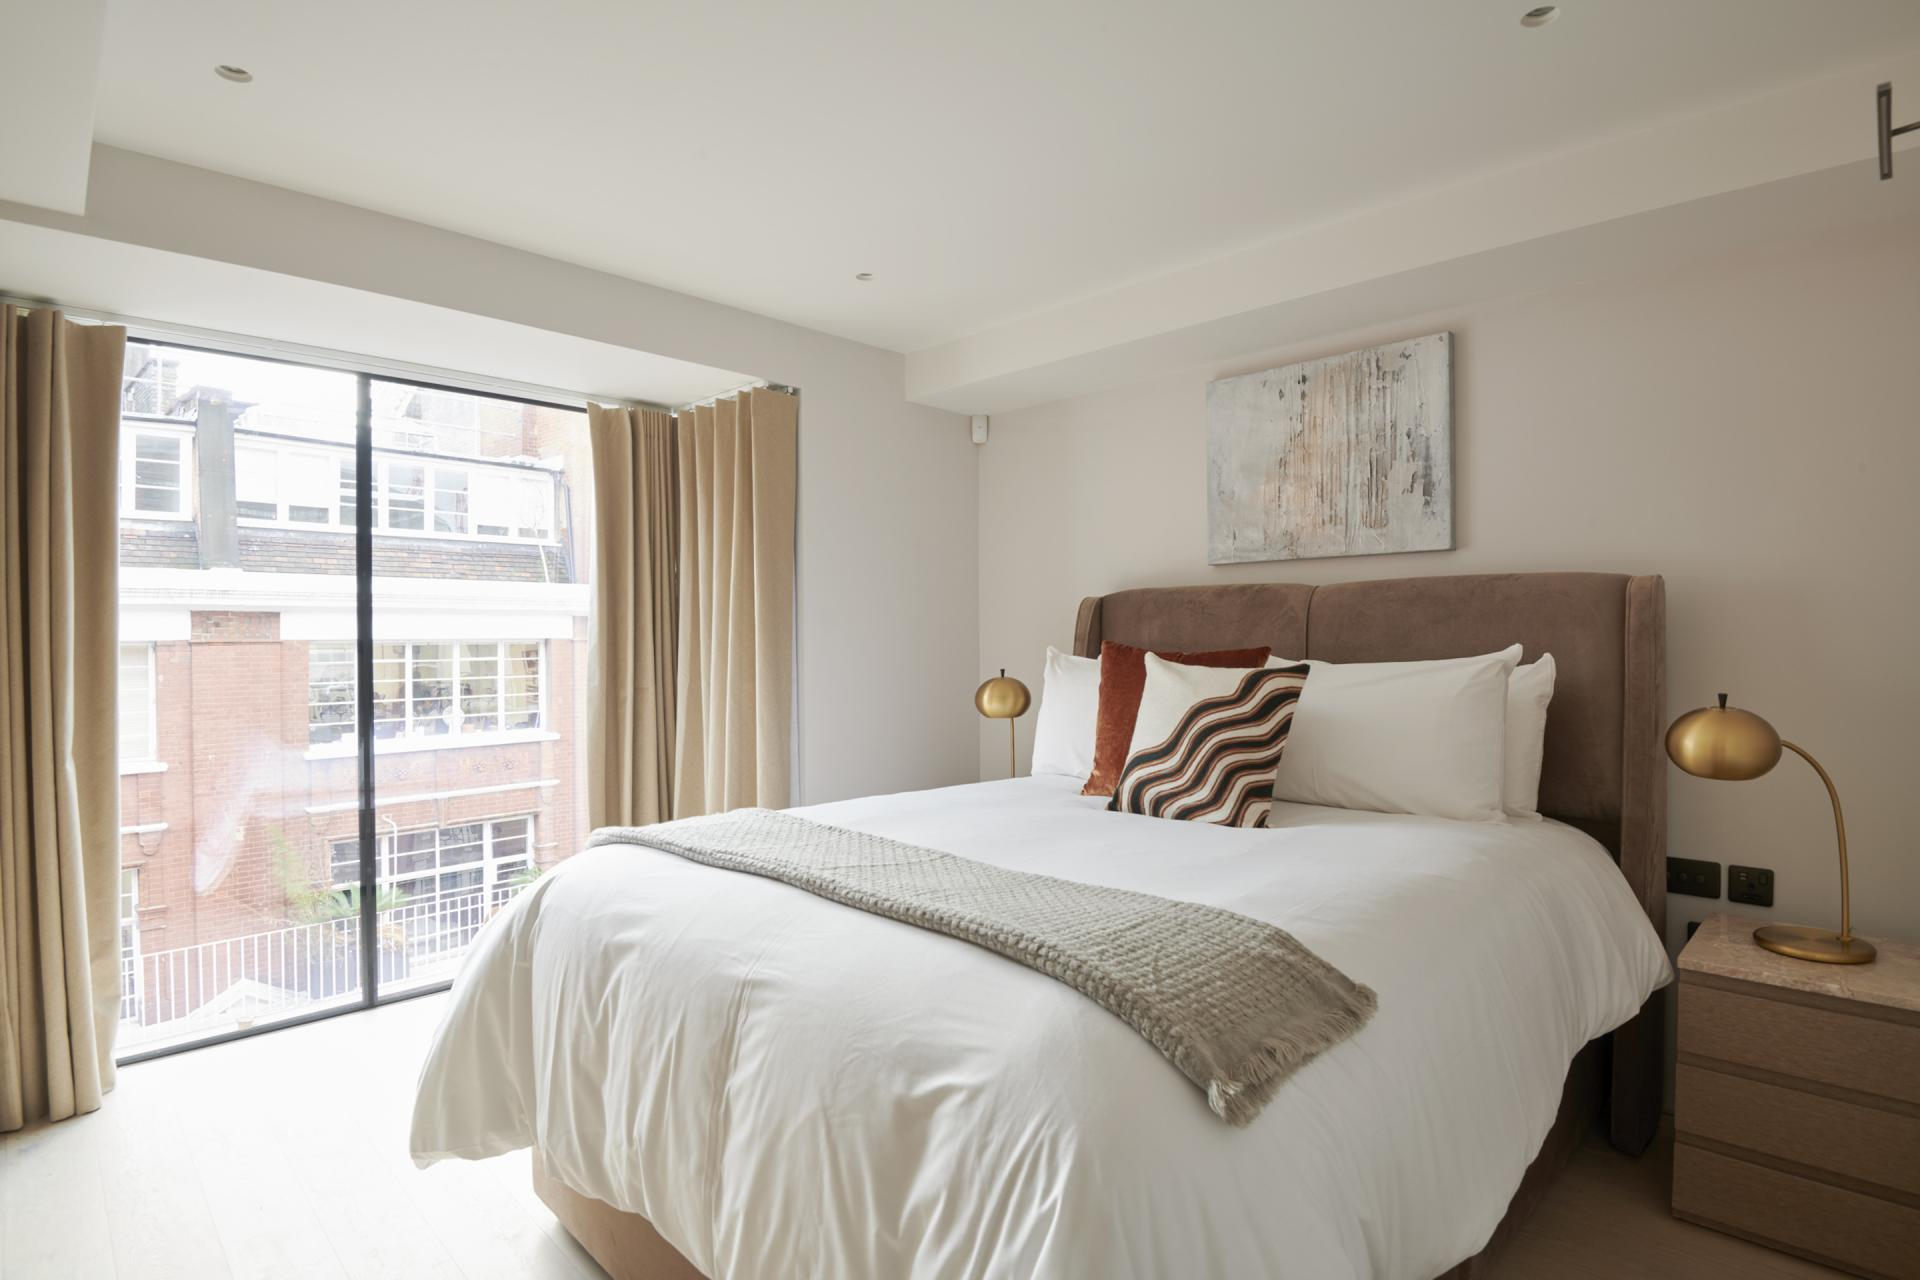 Bedroom at Maddox Suites, Carnaby, London - Citybase Apartments